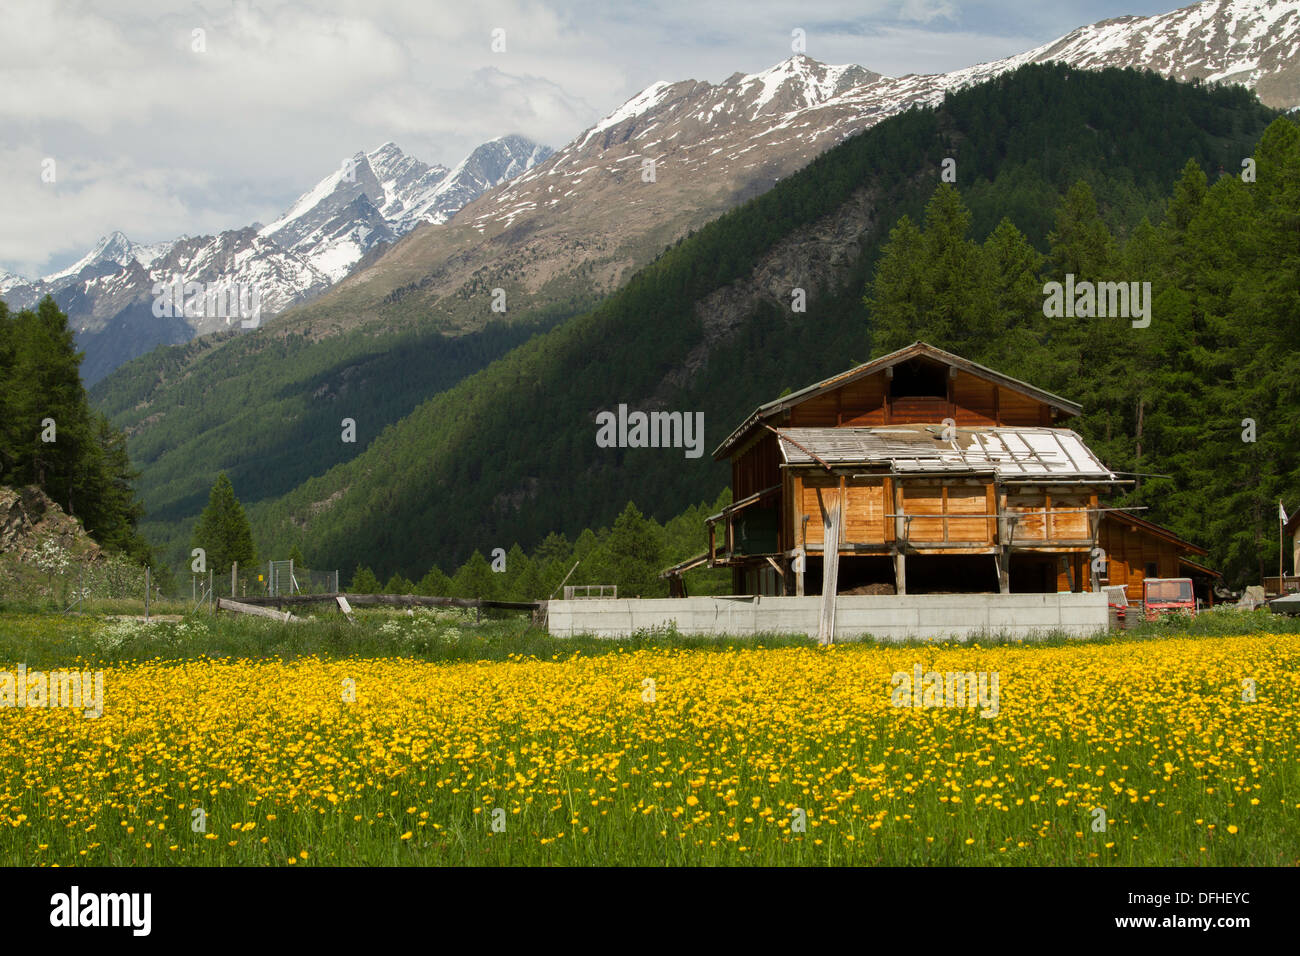 Swiss Chalet and Buttercup meadow with Alps in the background - Stock Image